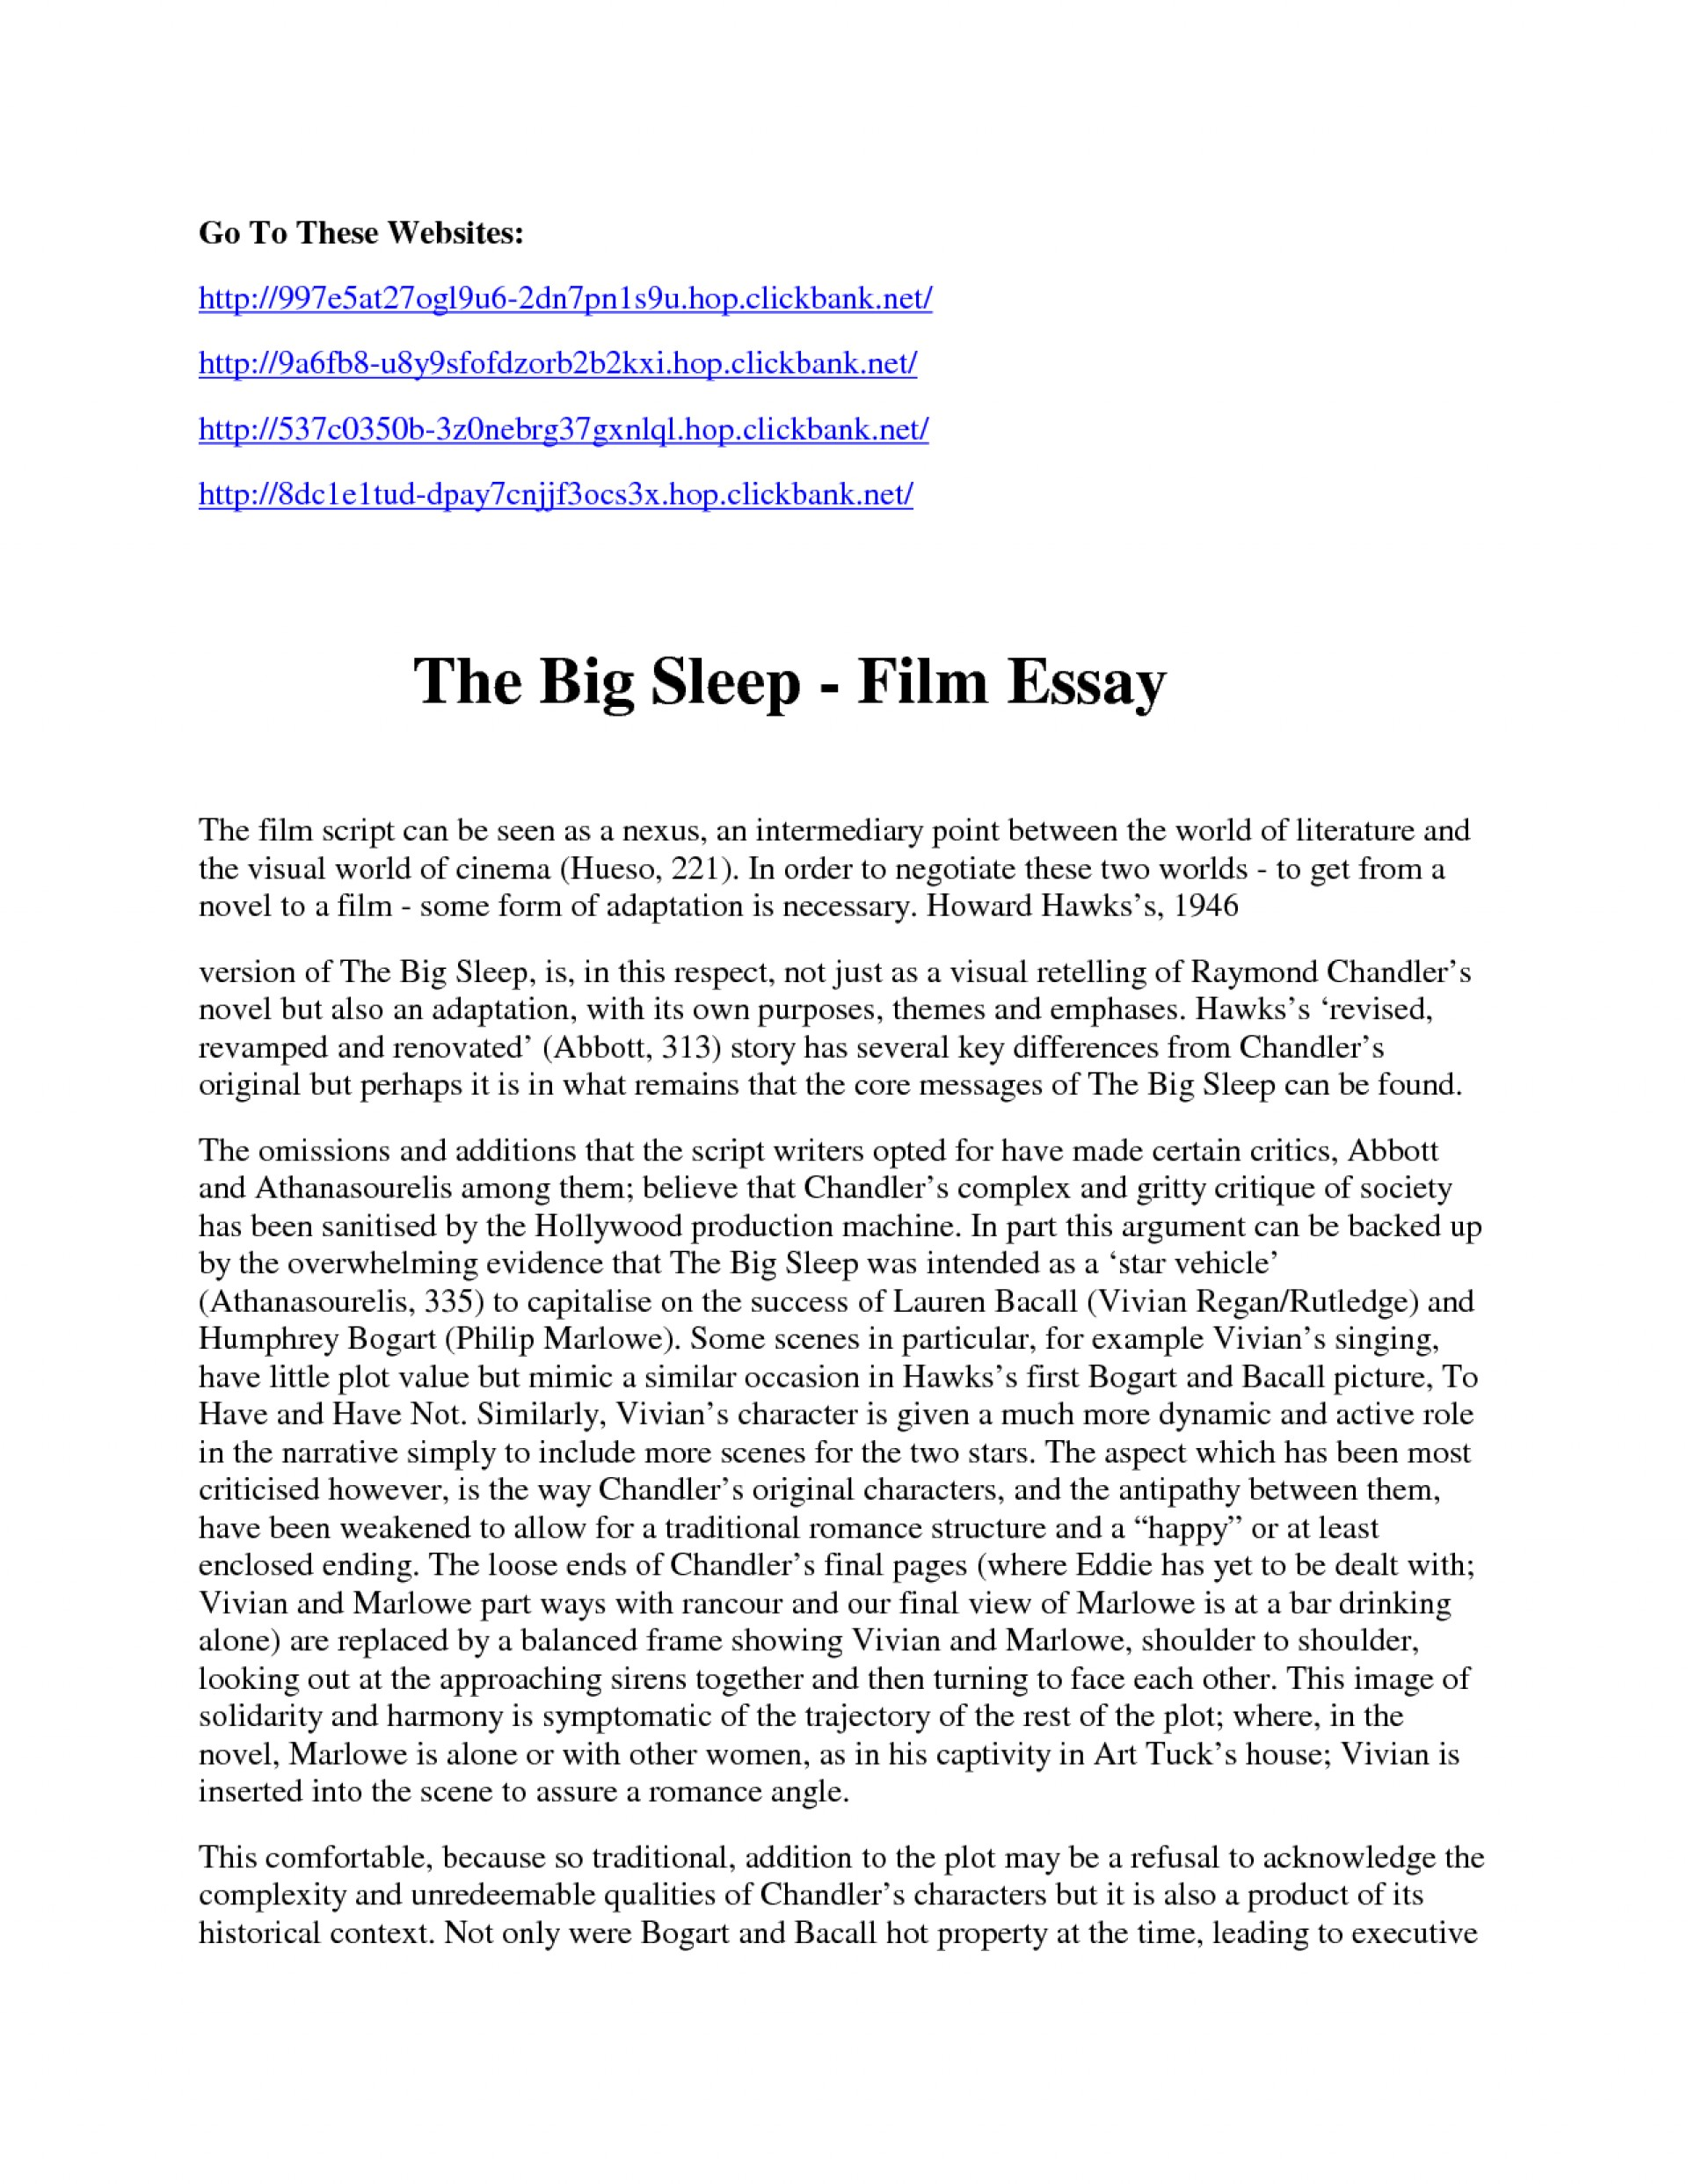 003 Example Movie Review Essays 130056 Essay Frightening Film Festival Harry Potter 1920